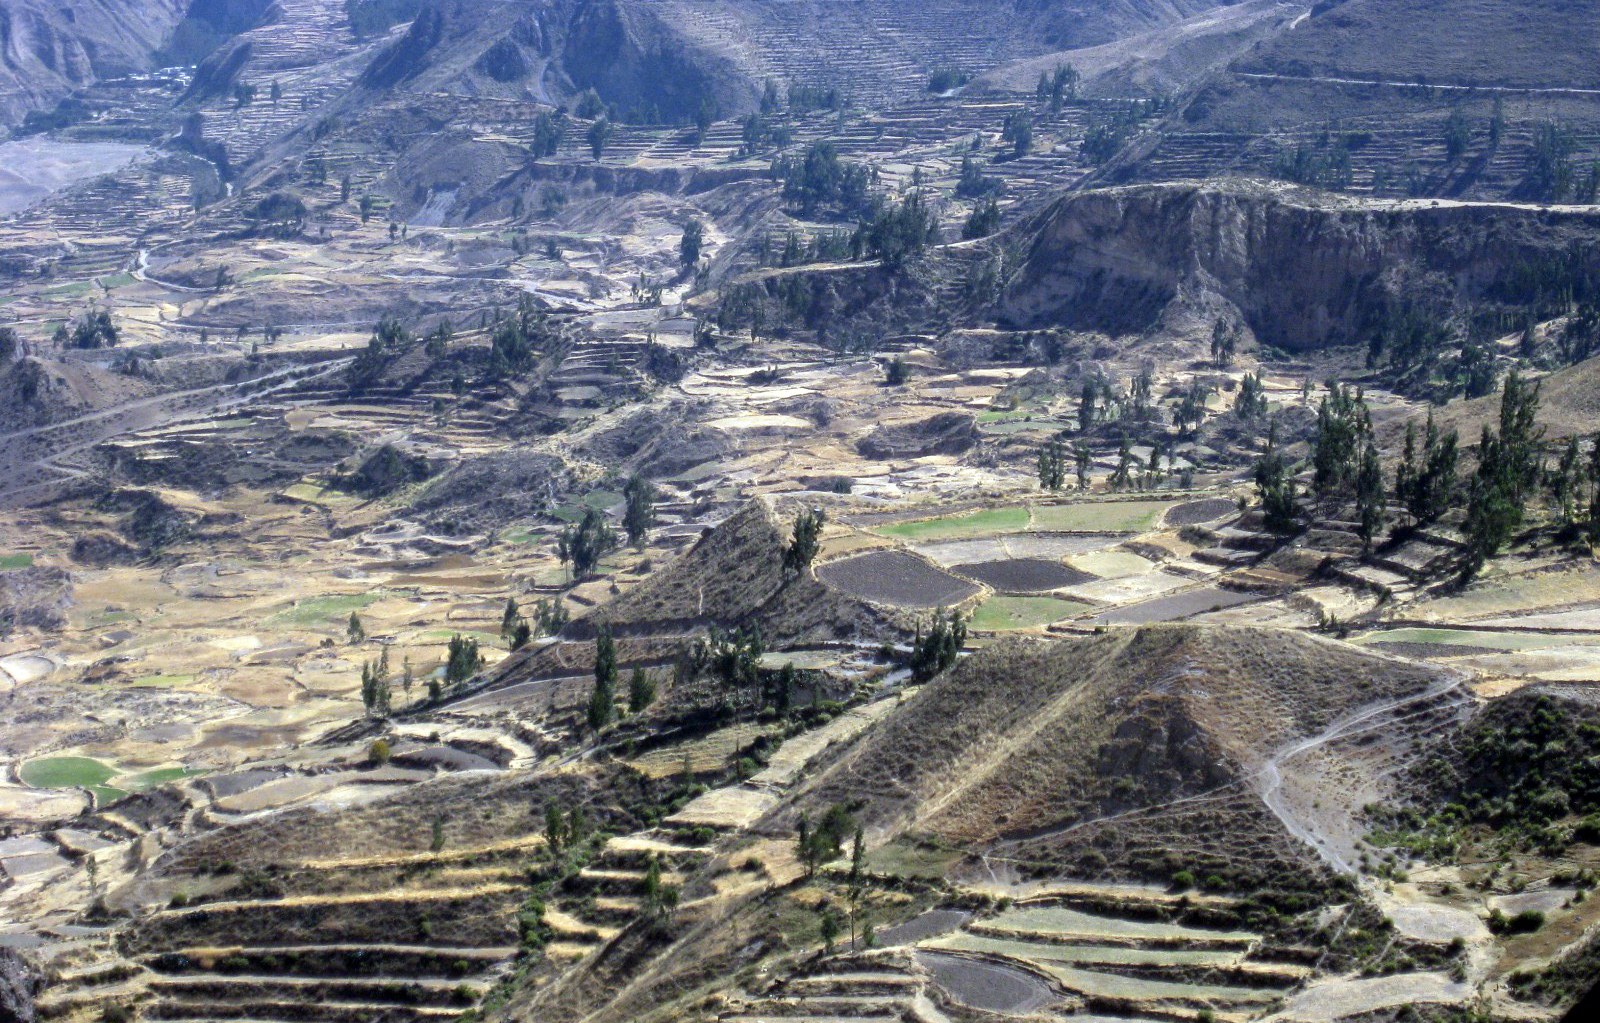 Hell of a hike – My trek in Colca Canyon